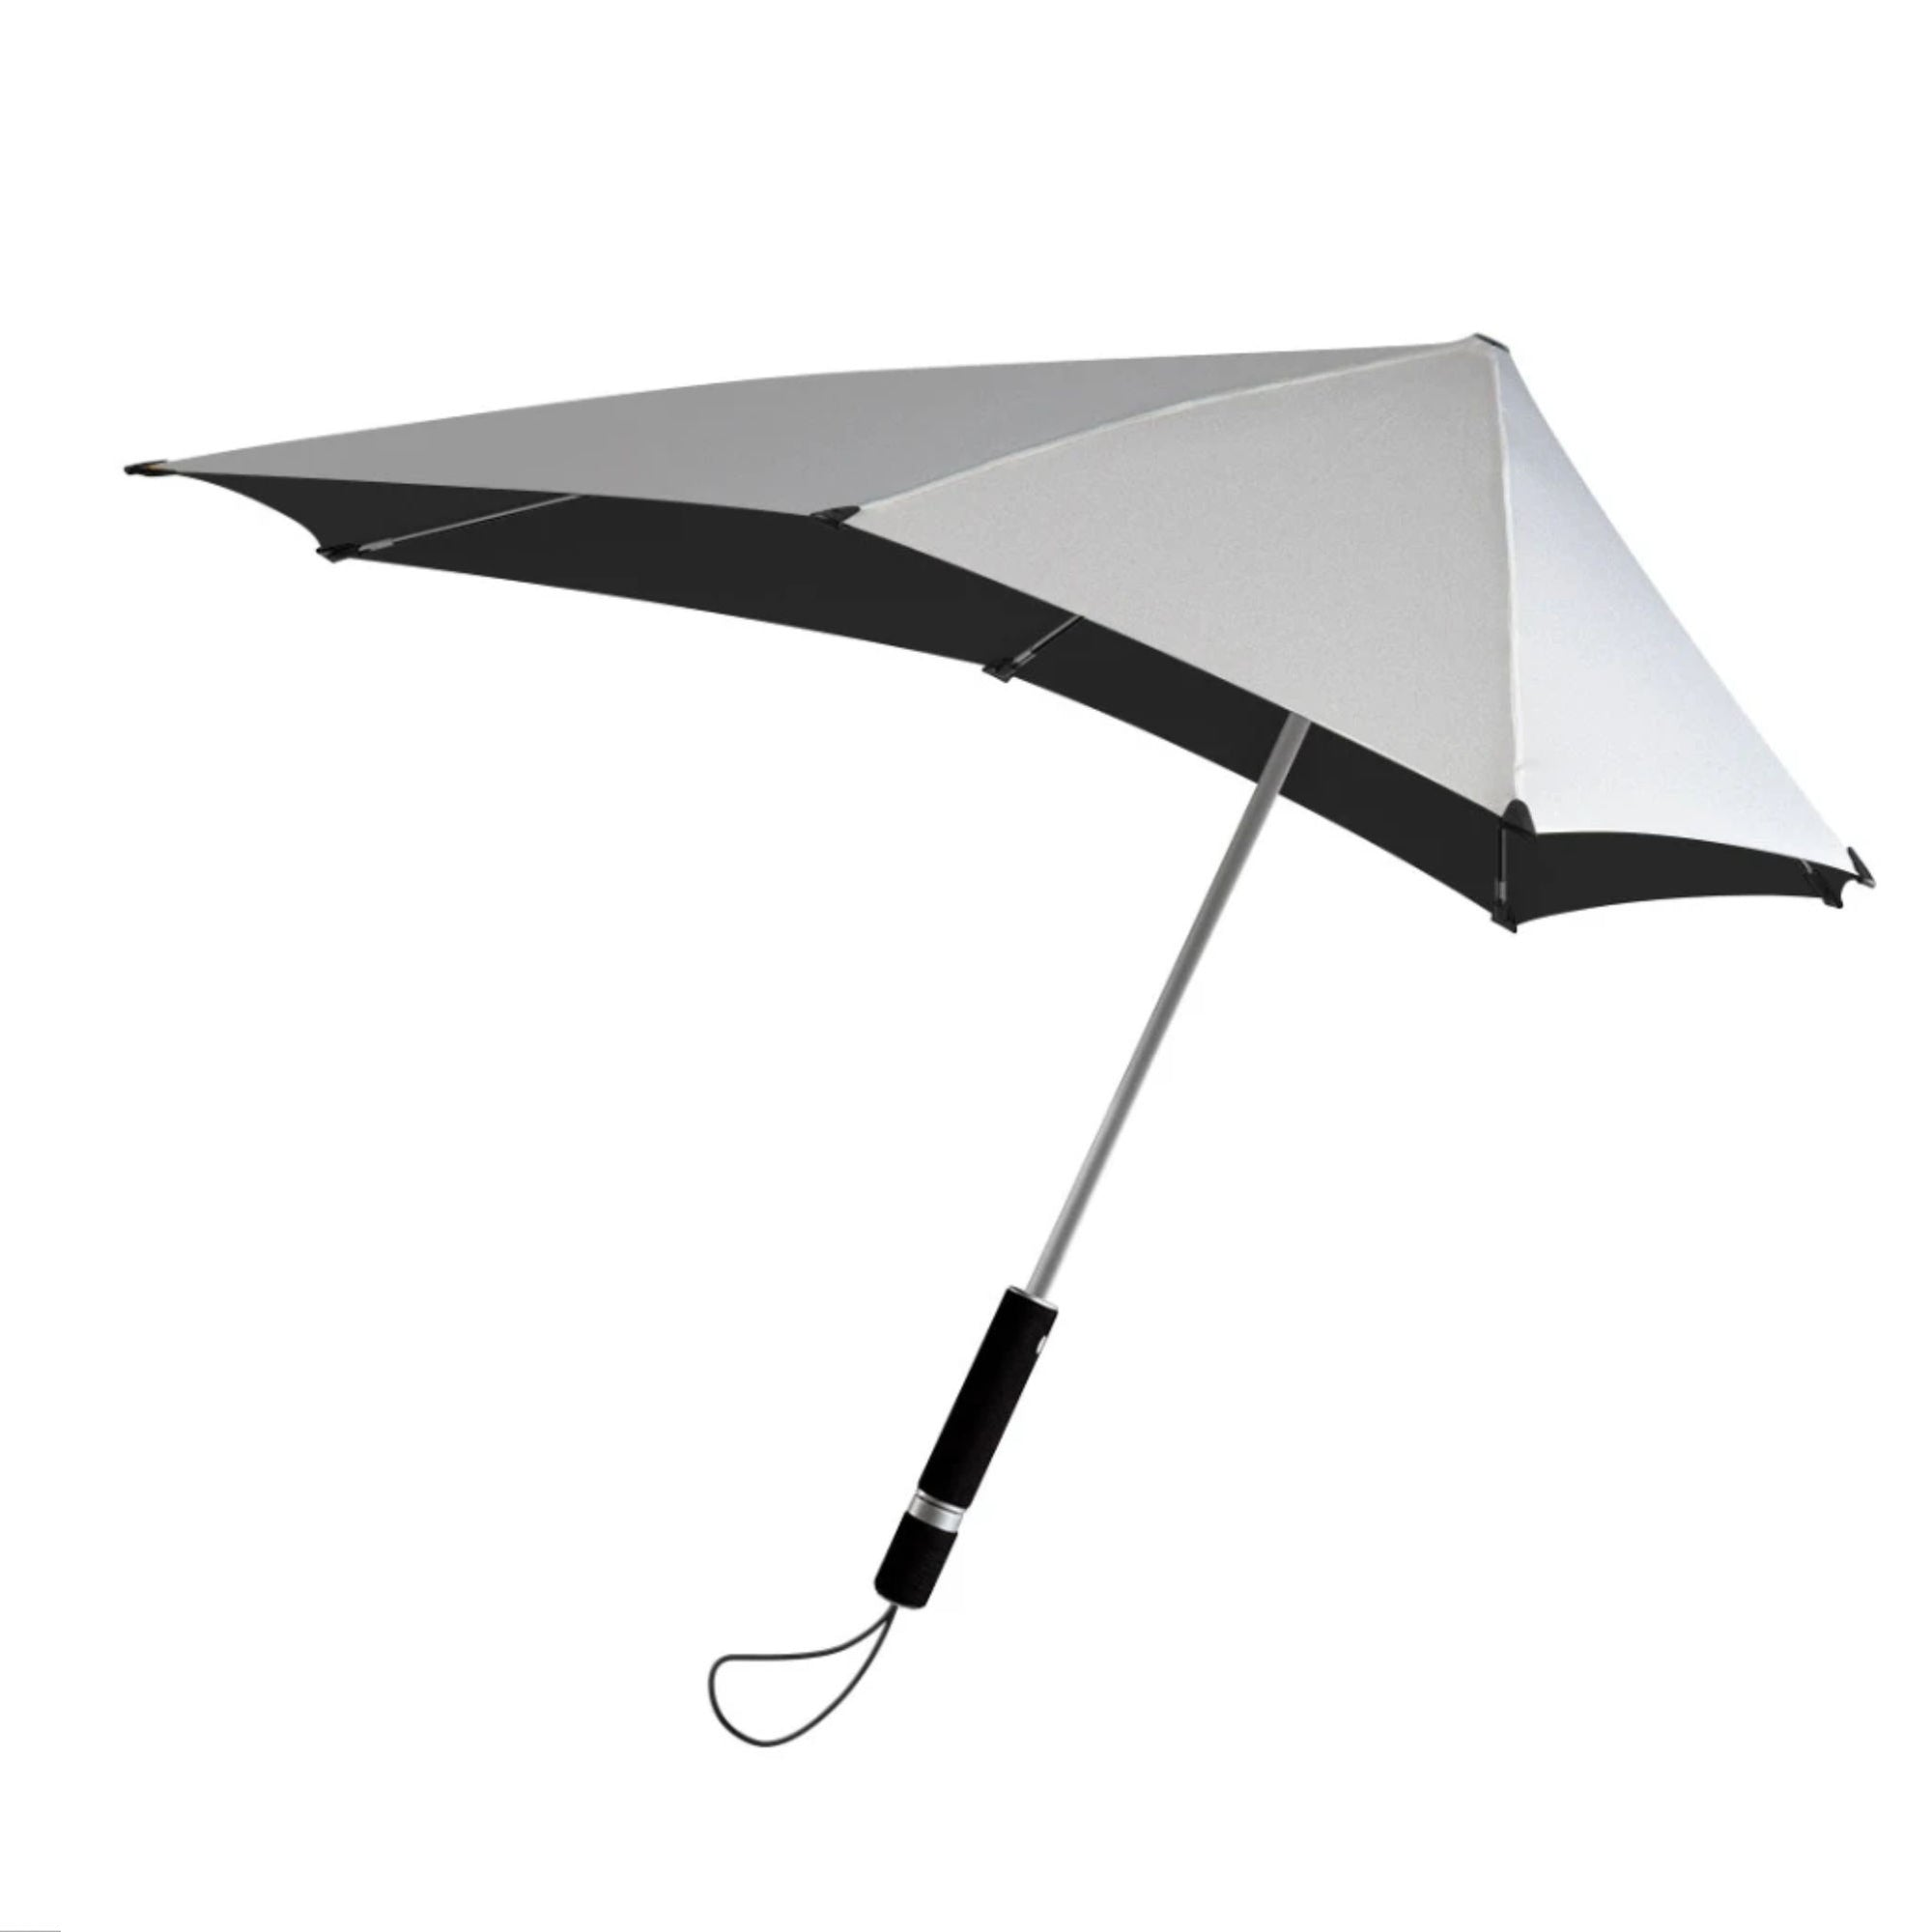 Senz° Original storm umbrella, shiny silver